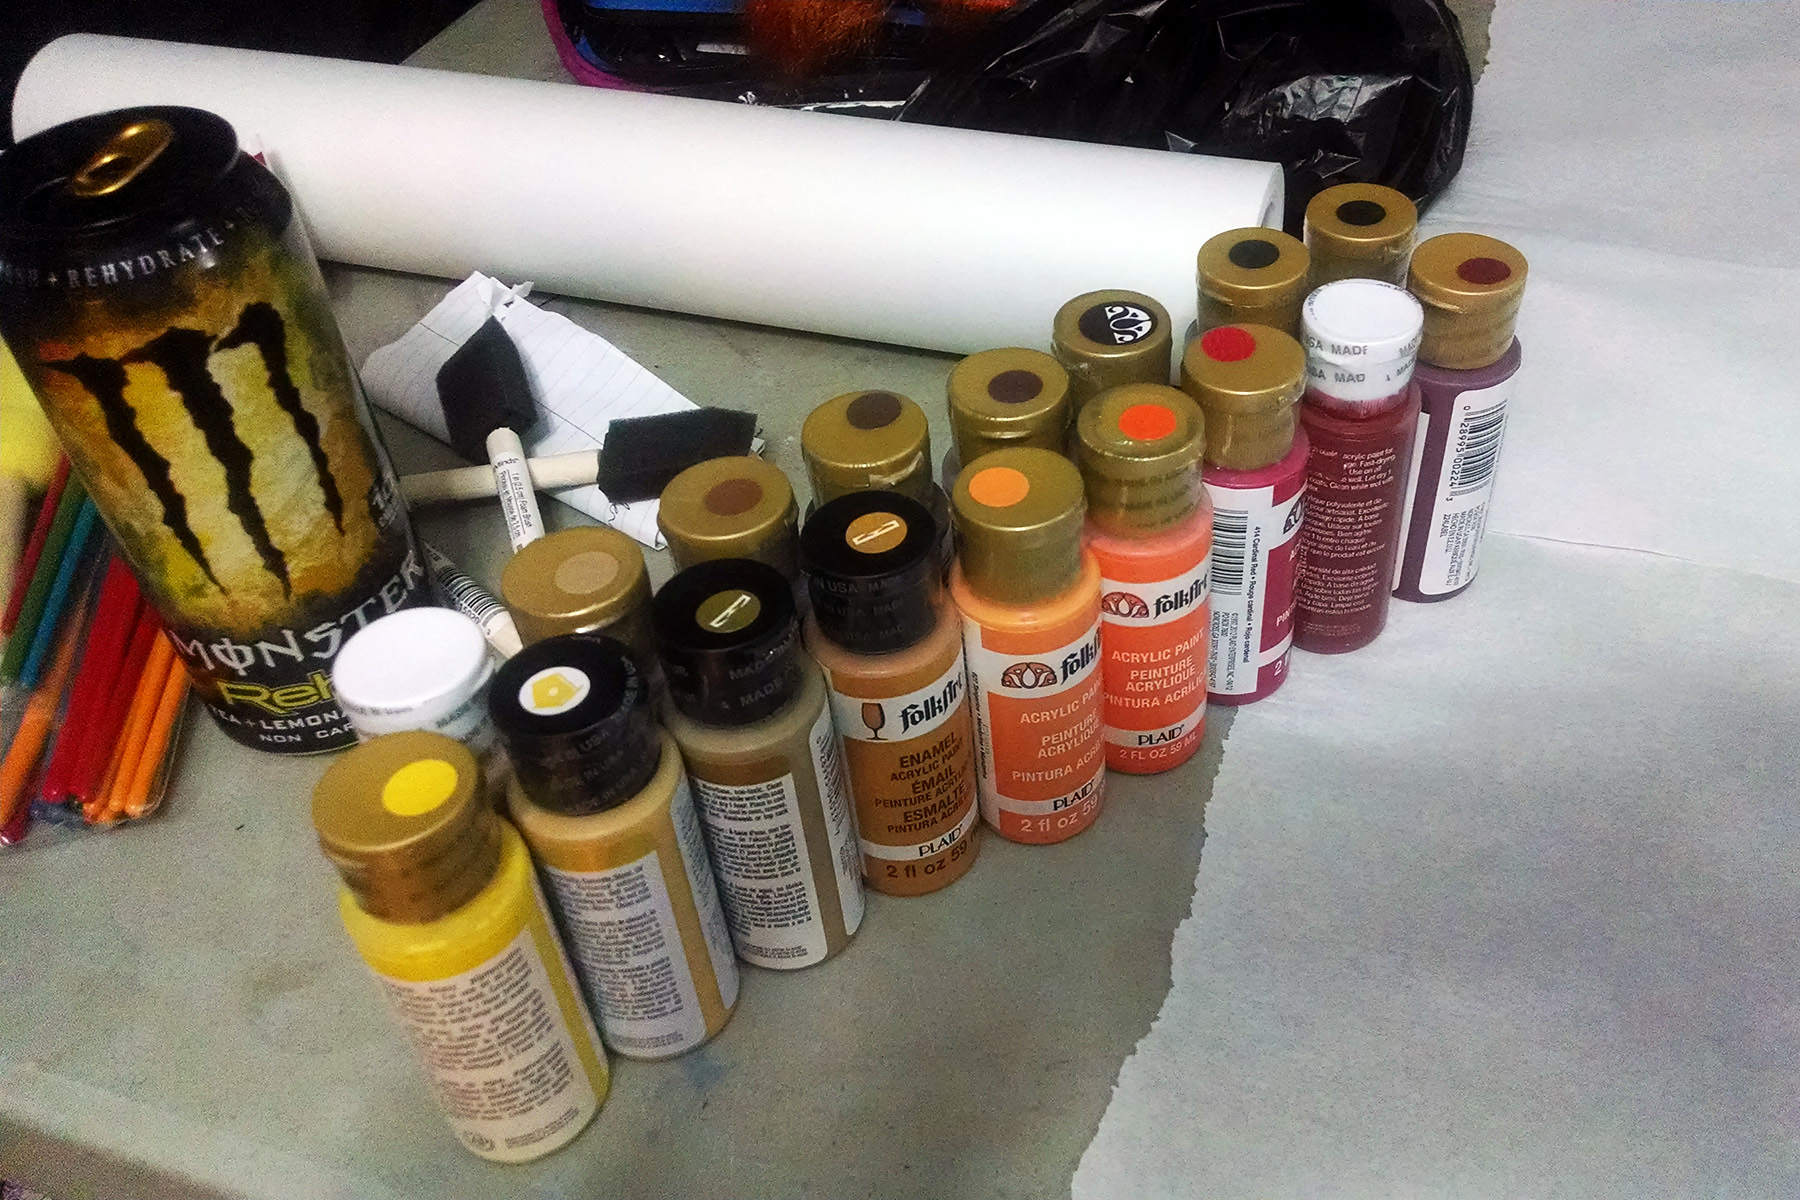 18 different tubes of acrylic paint - yellows, oranges, gold, red, and black - are arranged in two rows on a work table.